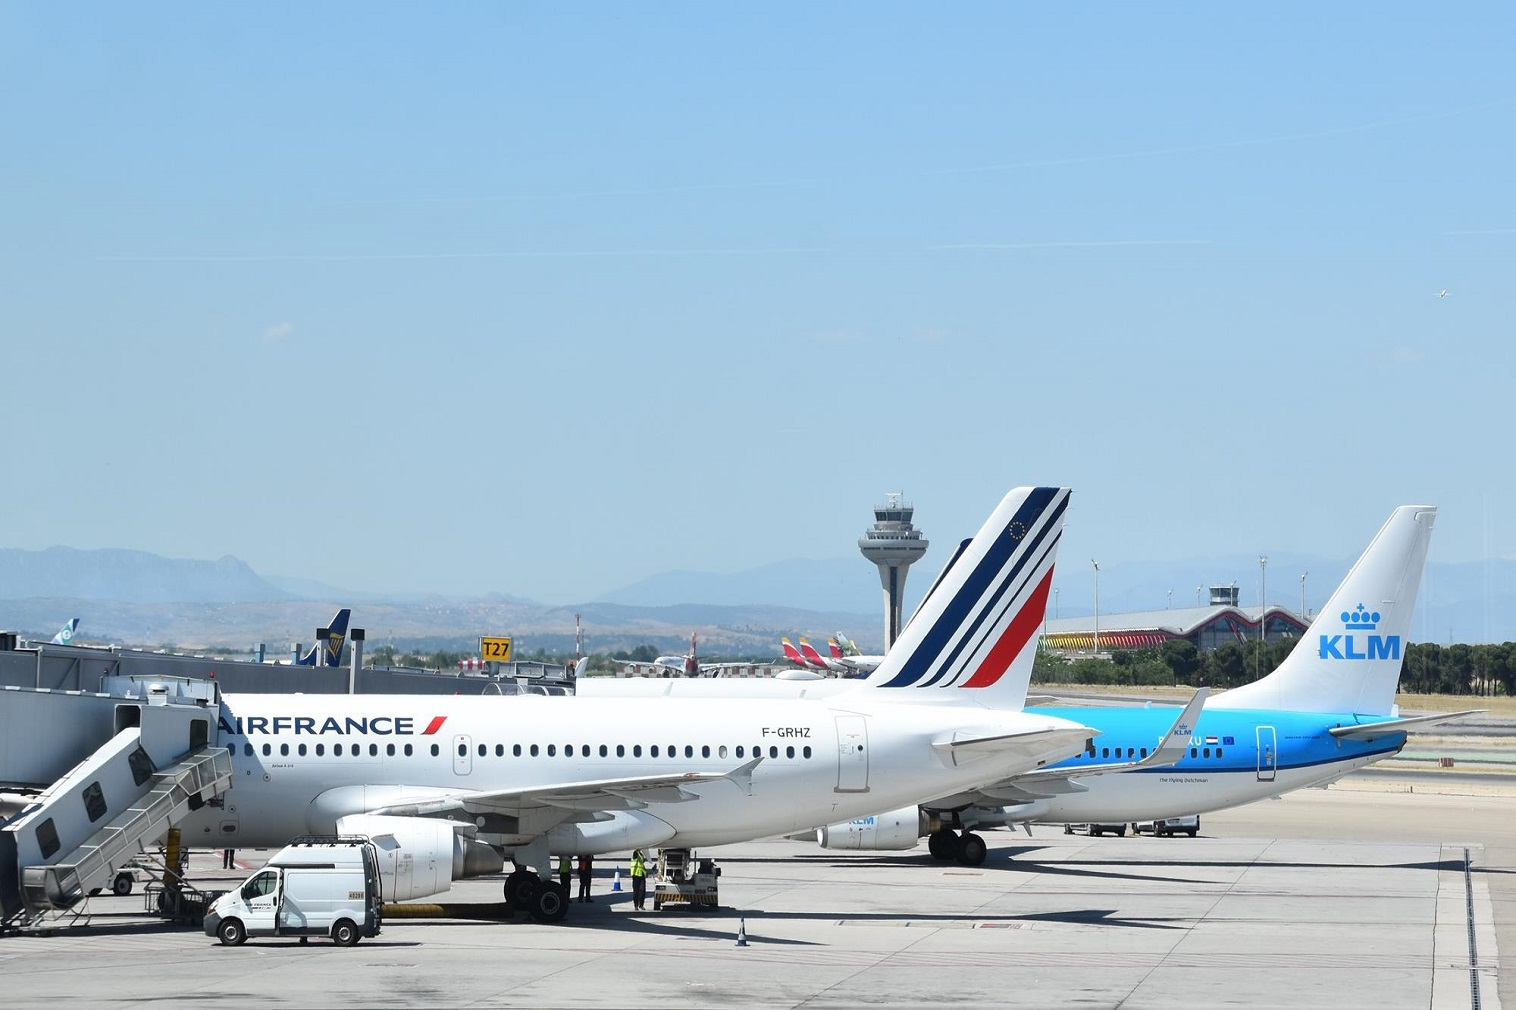 COVID-19: Air France and KLM are gradually and carefully restoring their networks.